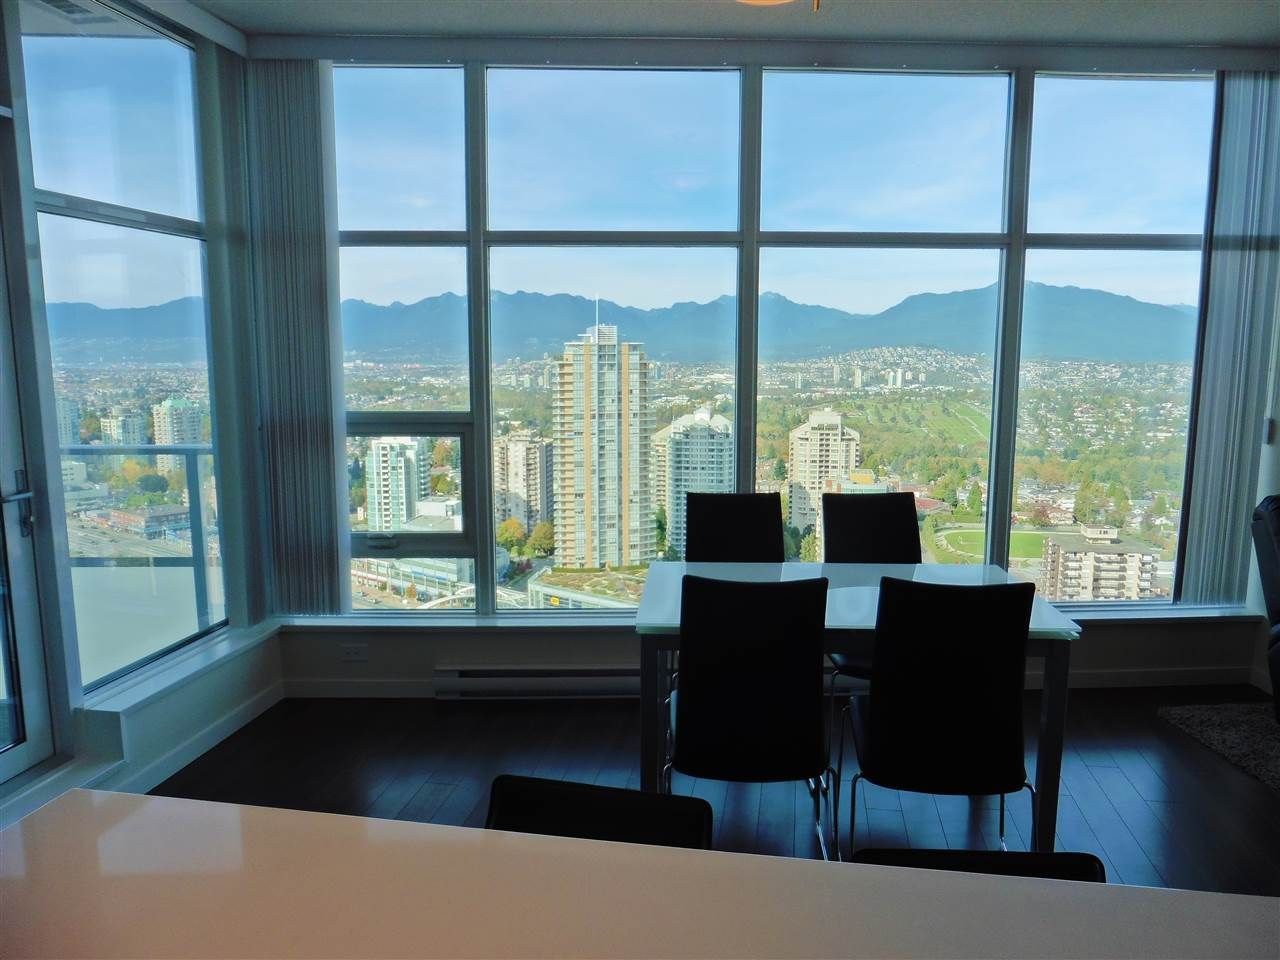 """Photo 16: Photos: 3702 4880 BENNETT Street in Burnaby: Metrotown Condo for sale in """"CHANCELLOR"""" (Burnaby South)  : MLS®# R2006395"""